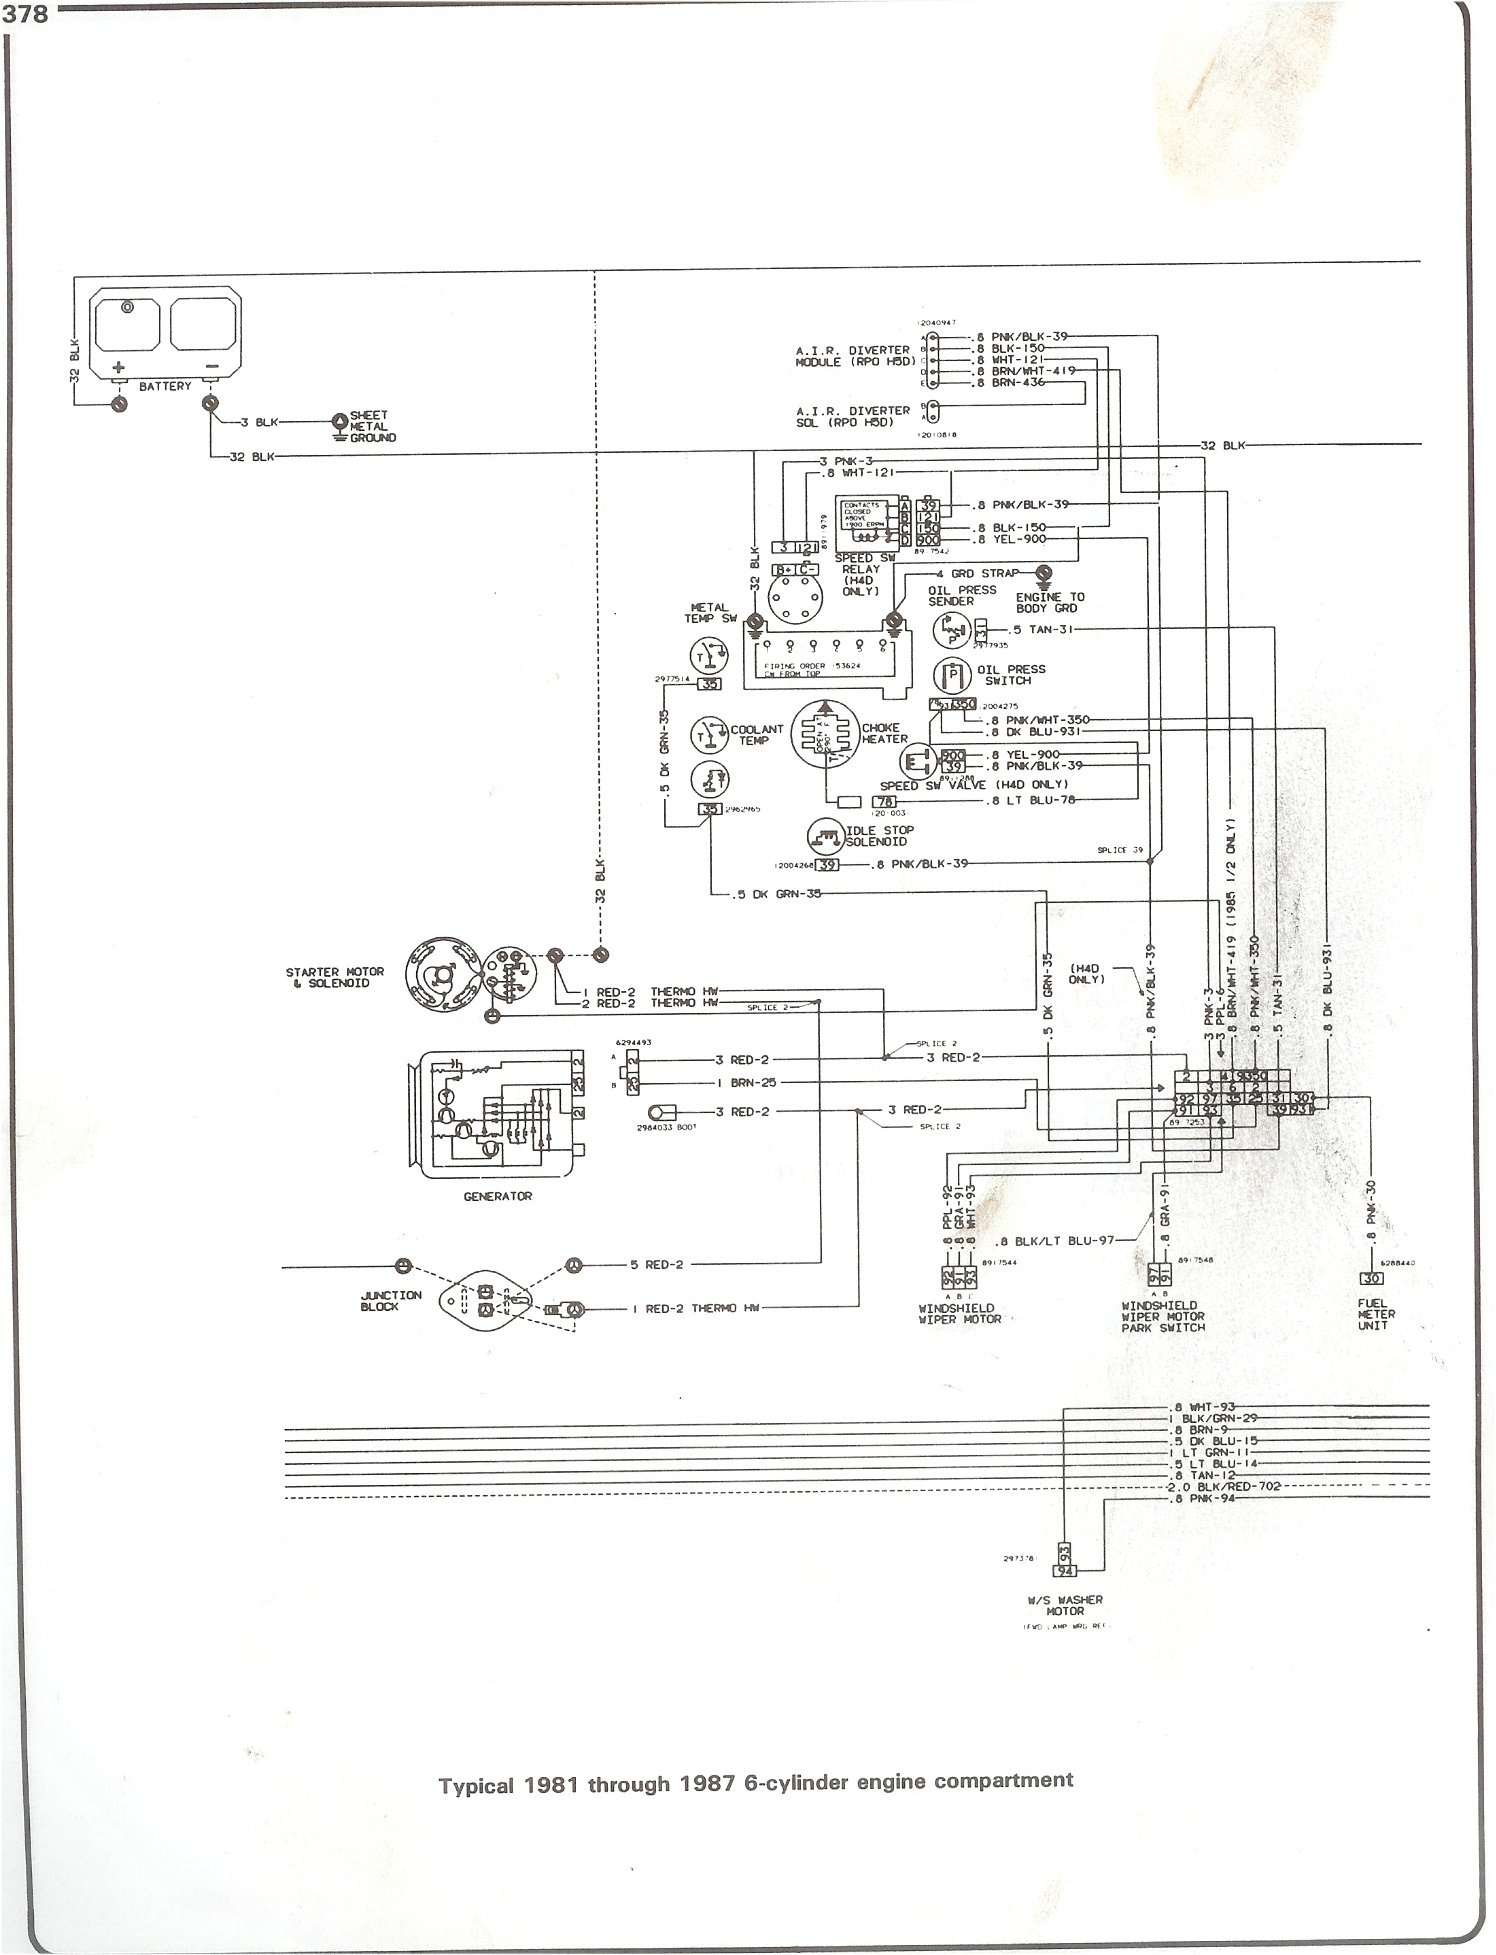 1999 Gmc C7500 Wiring Diagram moreover Maniford htr furthermore Index php as well RepairGuideContent moreover Gmc Fuse Box Diagrams Diagram Wiring C5500. on topkick electrical diagram